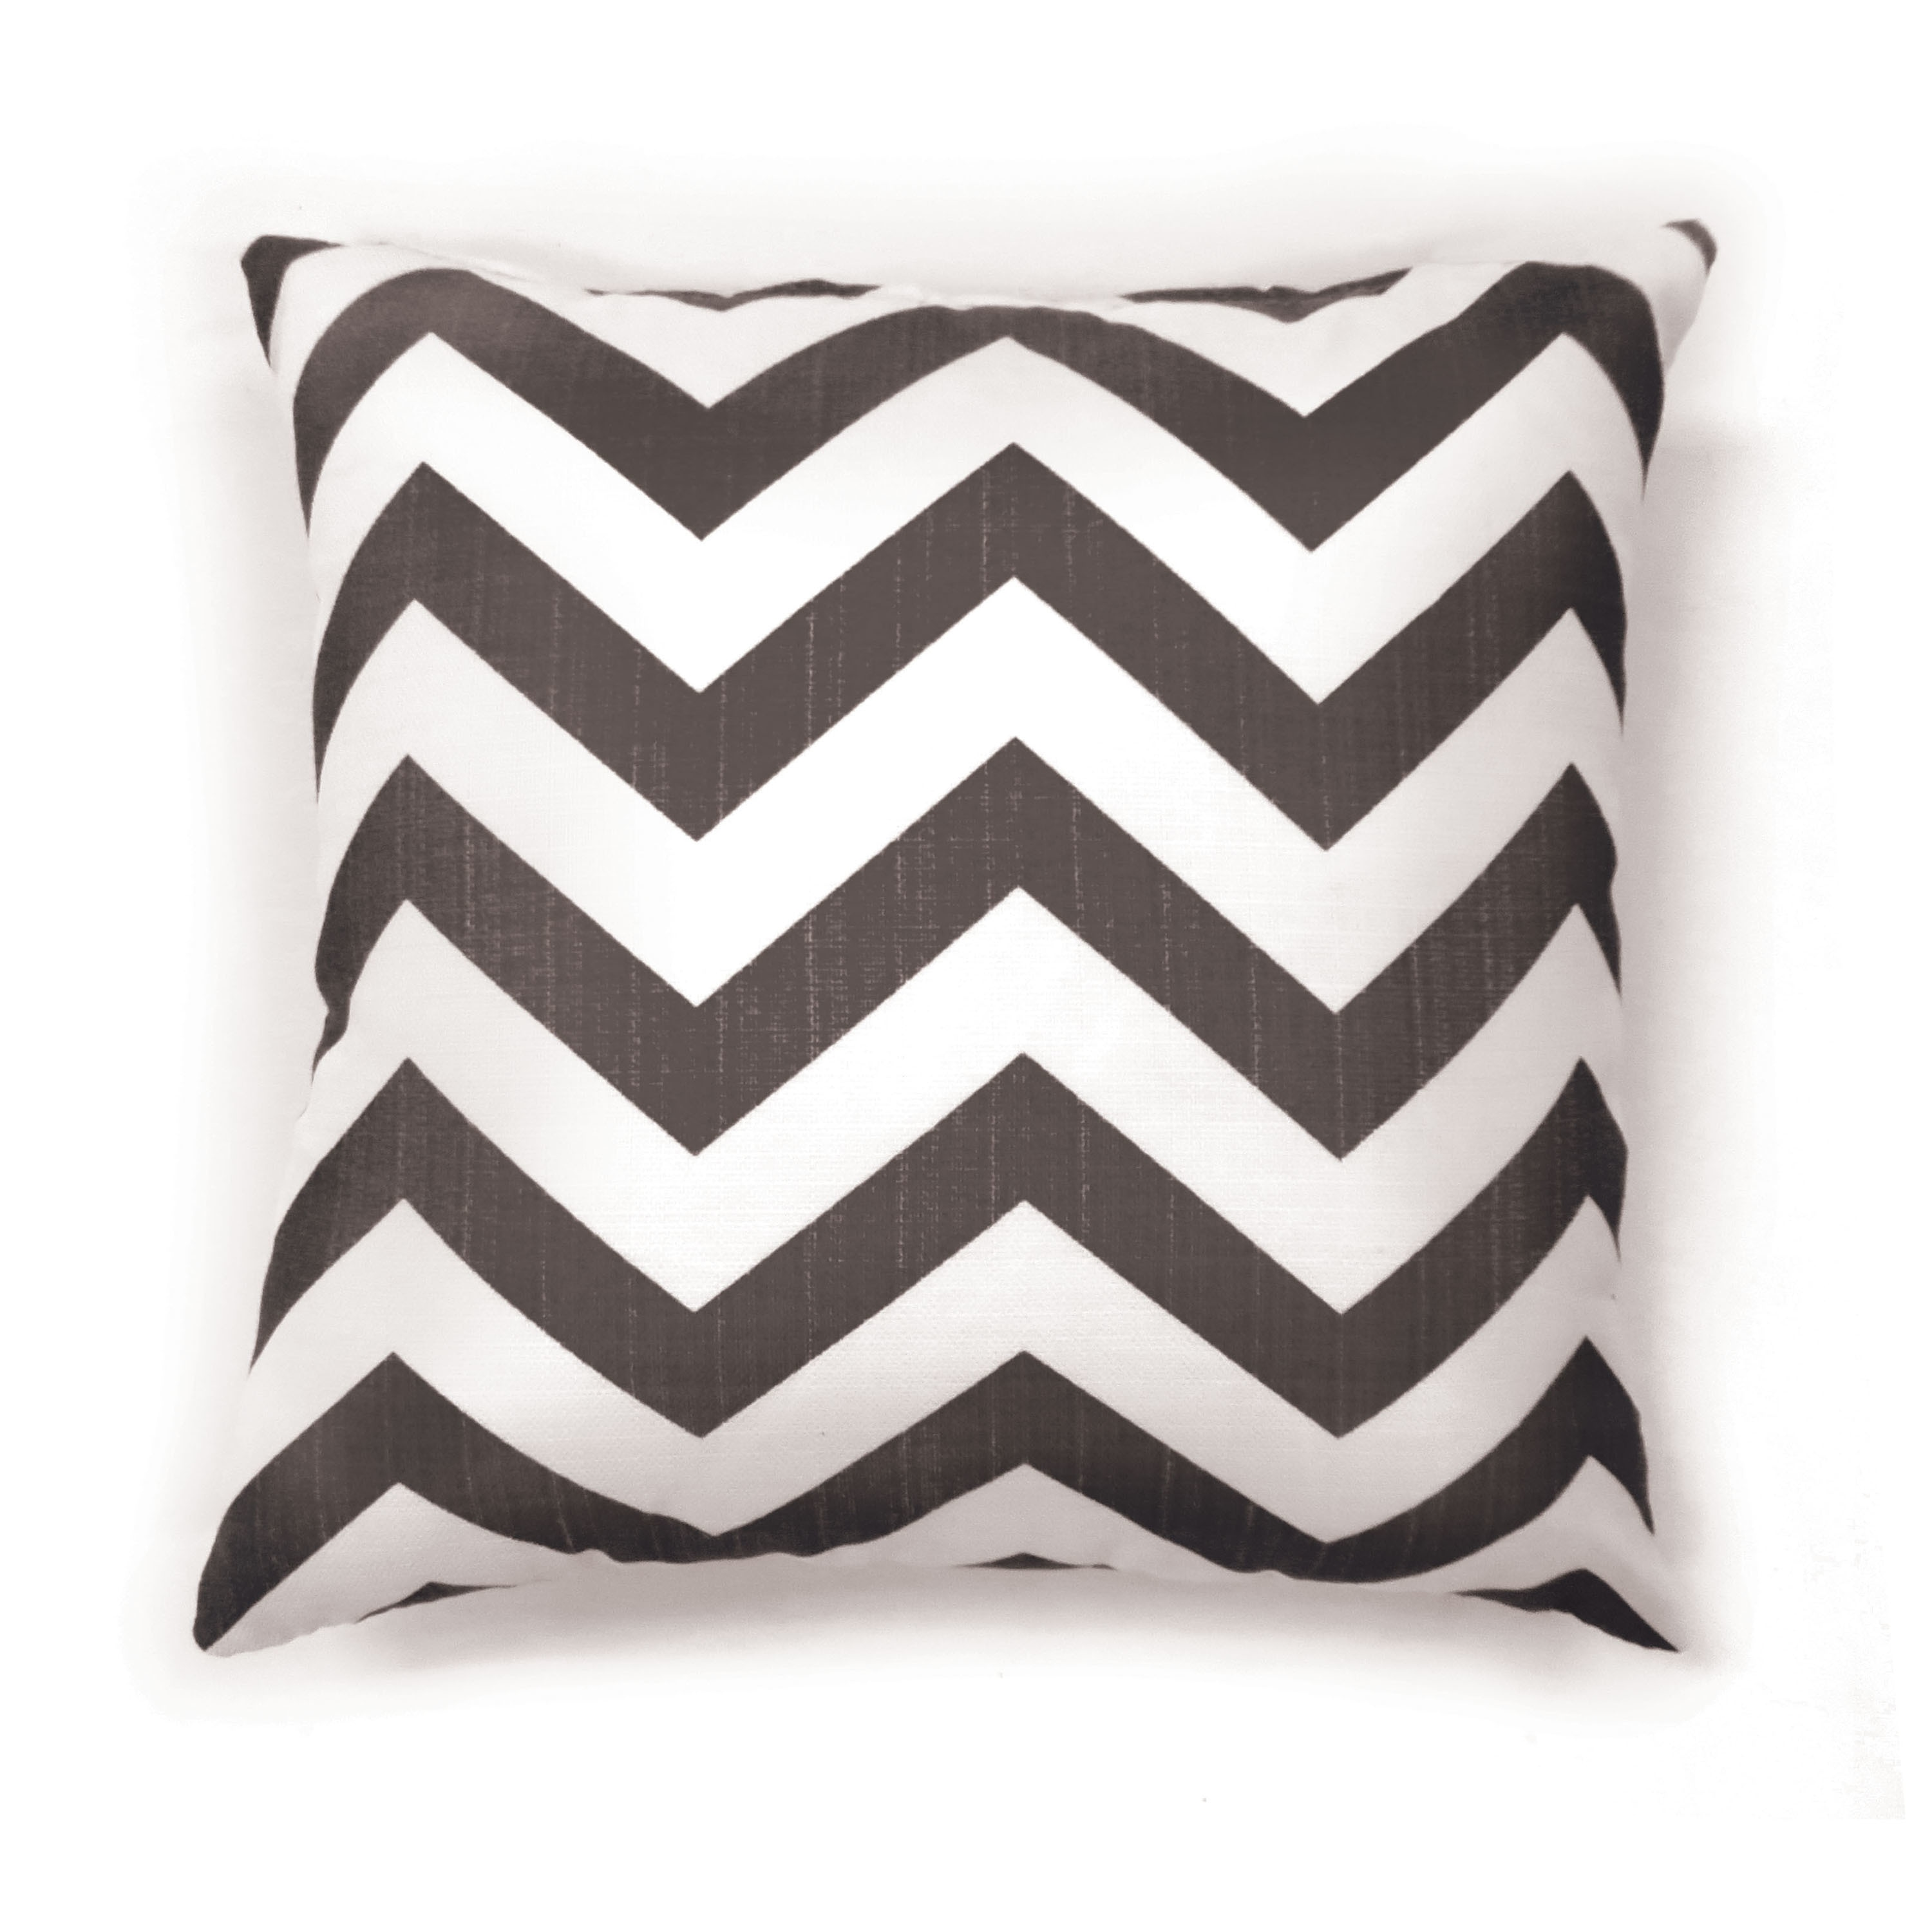 Furniture of america sutra contemporary chevron throw pillow free shipping today overstock 26174179